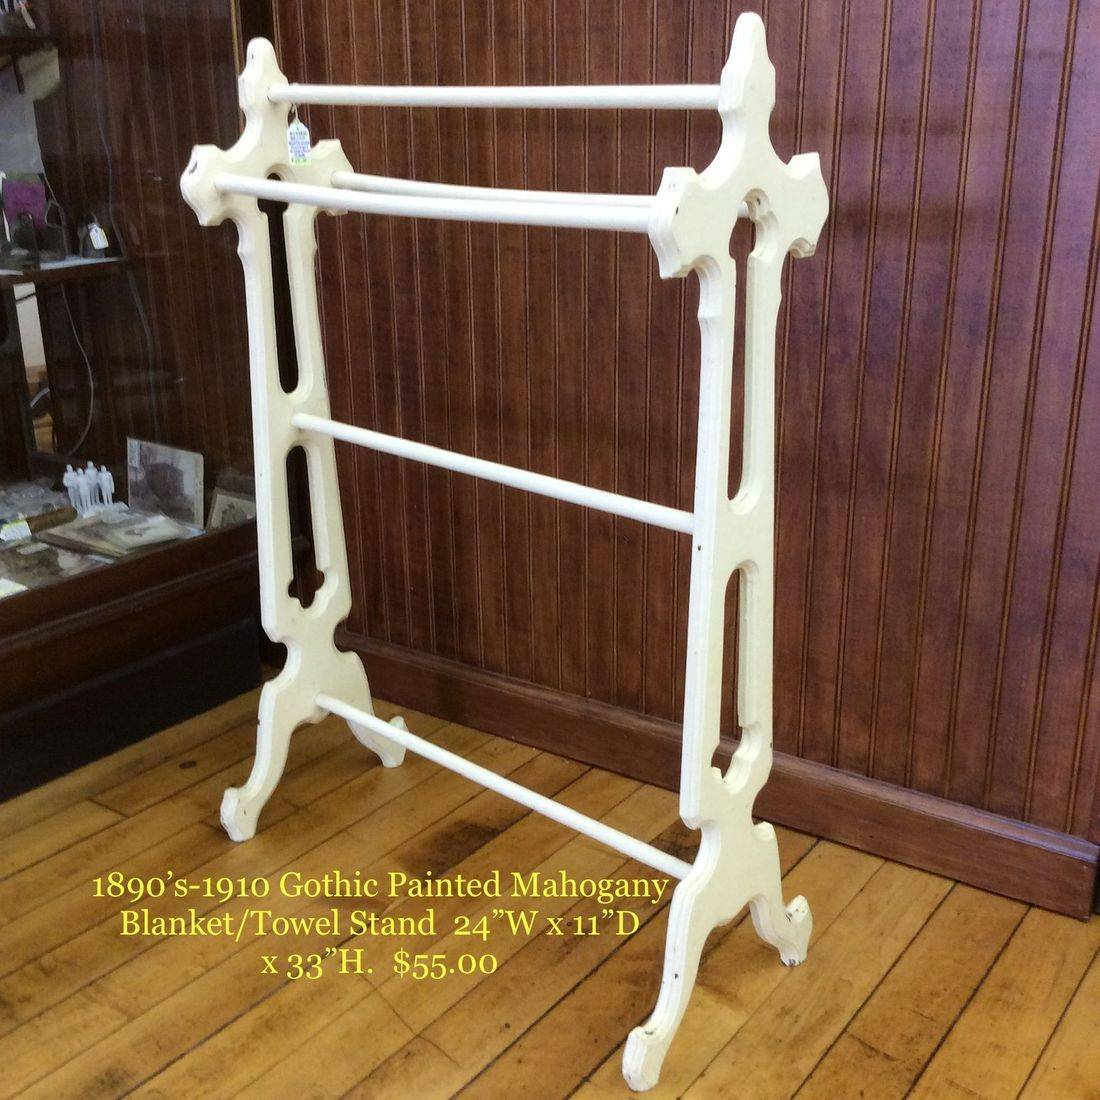 """1890's/1910 Gothic Painted Mahogany Blanket/Towel Stand   24""""W x 11""""D x 33""""H.  $55.00"""